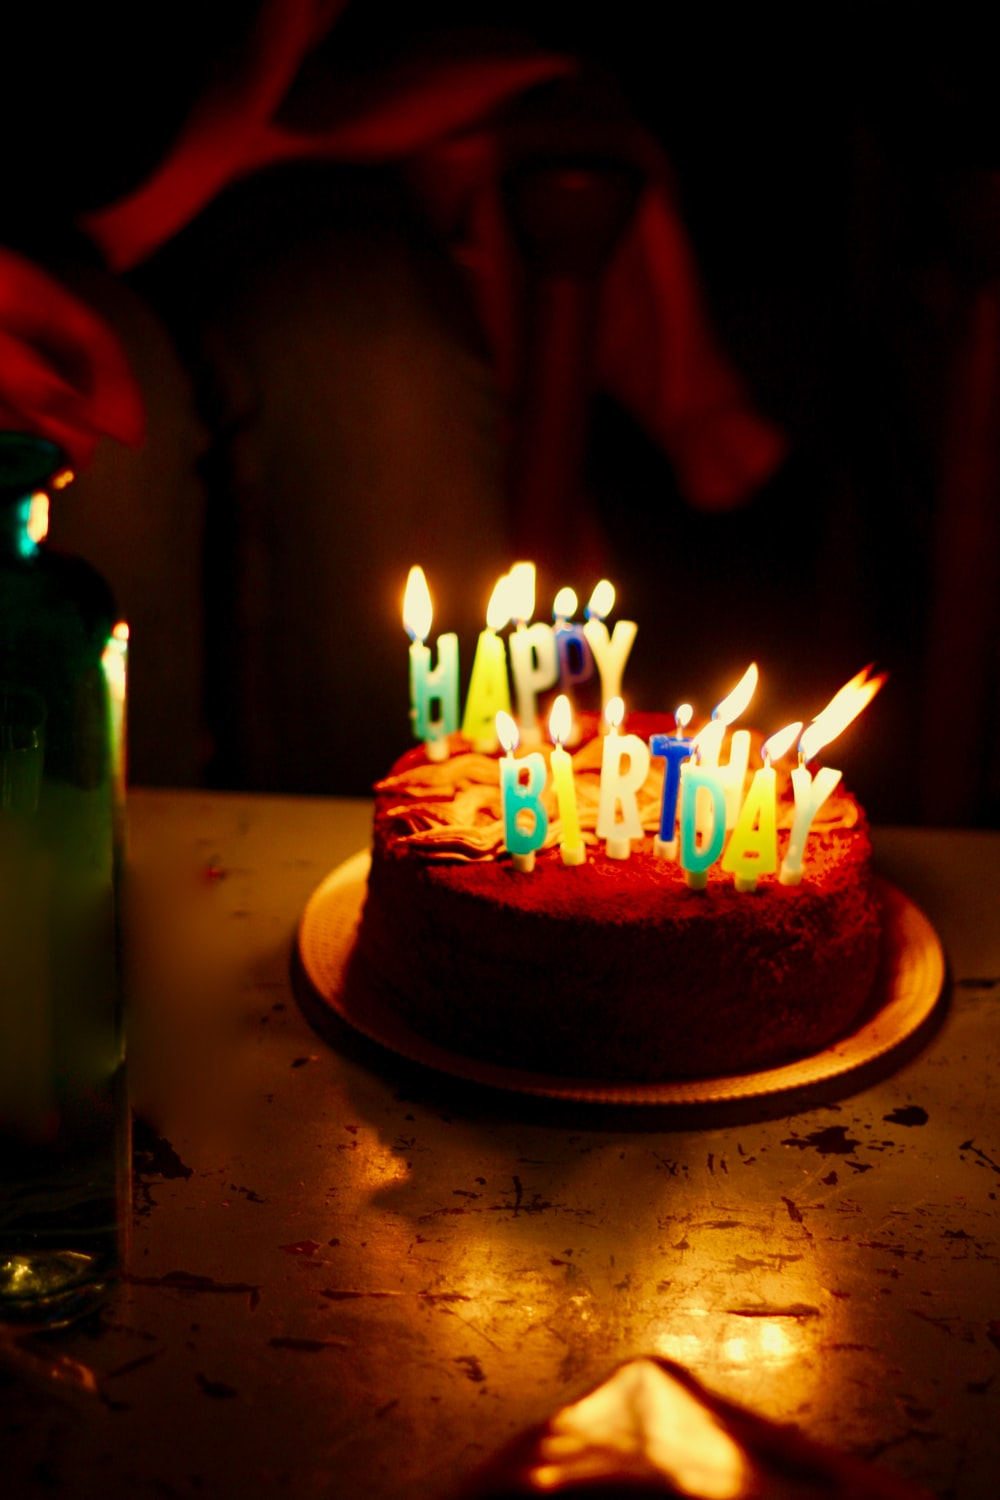 brown icing-covered cake with lighted candles